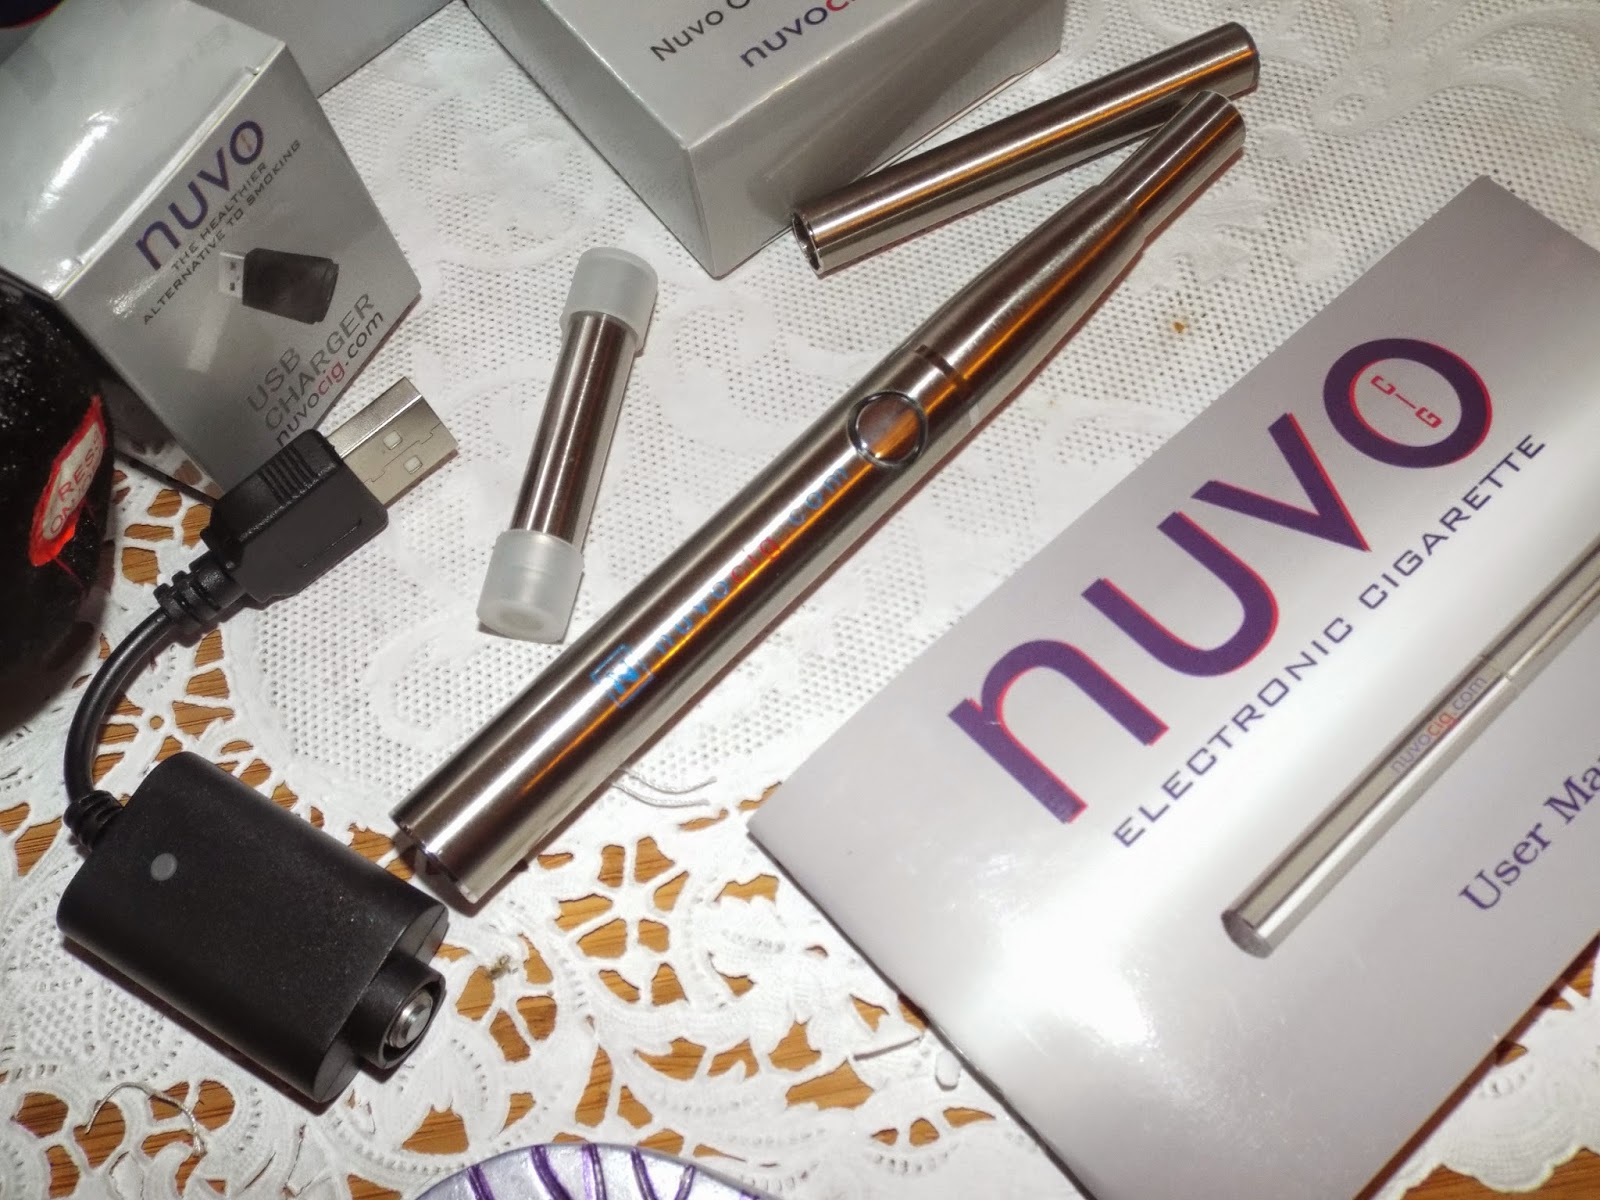 NuvoCig: Large Cigarette Battery